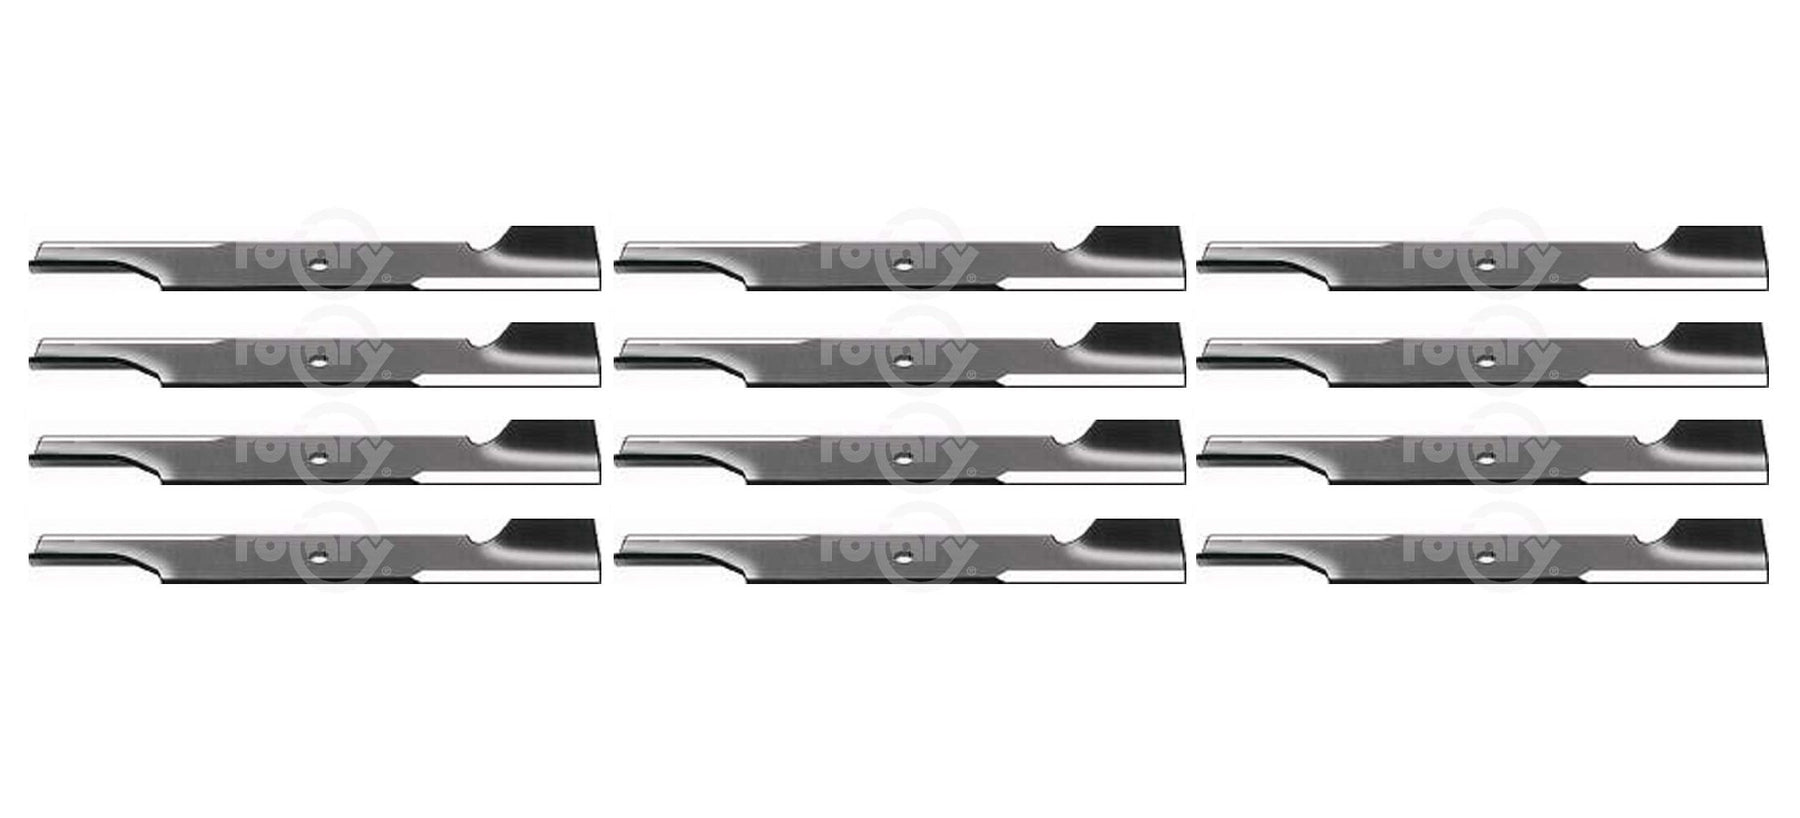 12 Pack Lawn Mower Blades Fits Bad Boy 038-5350-00